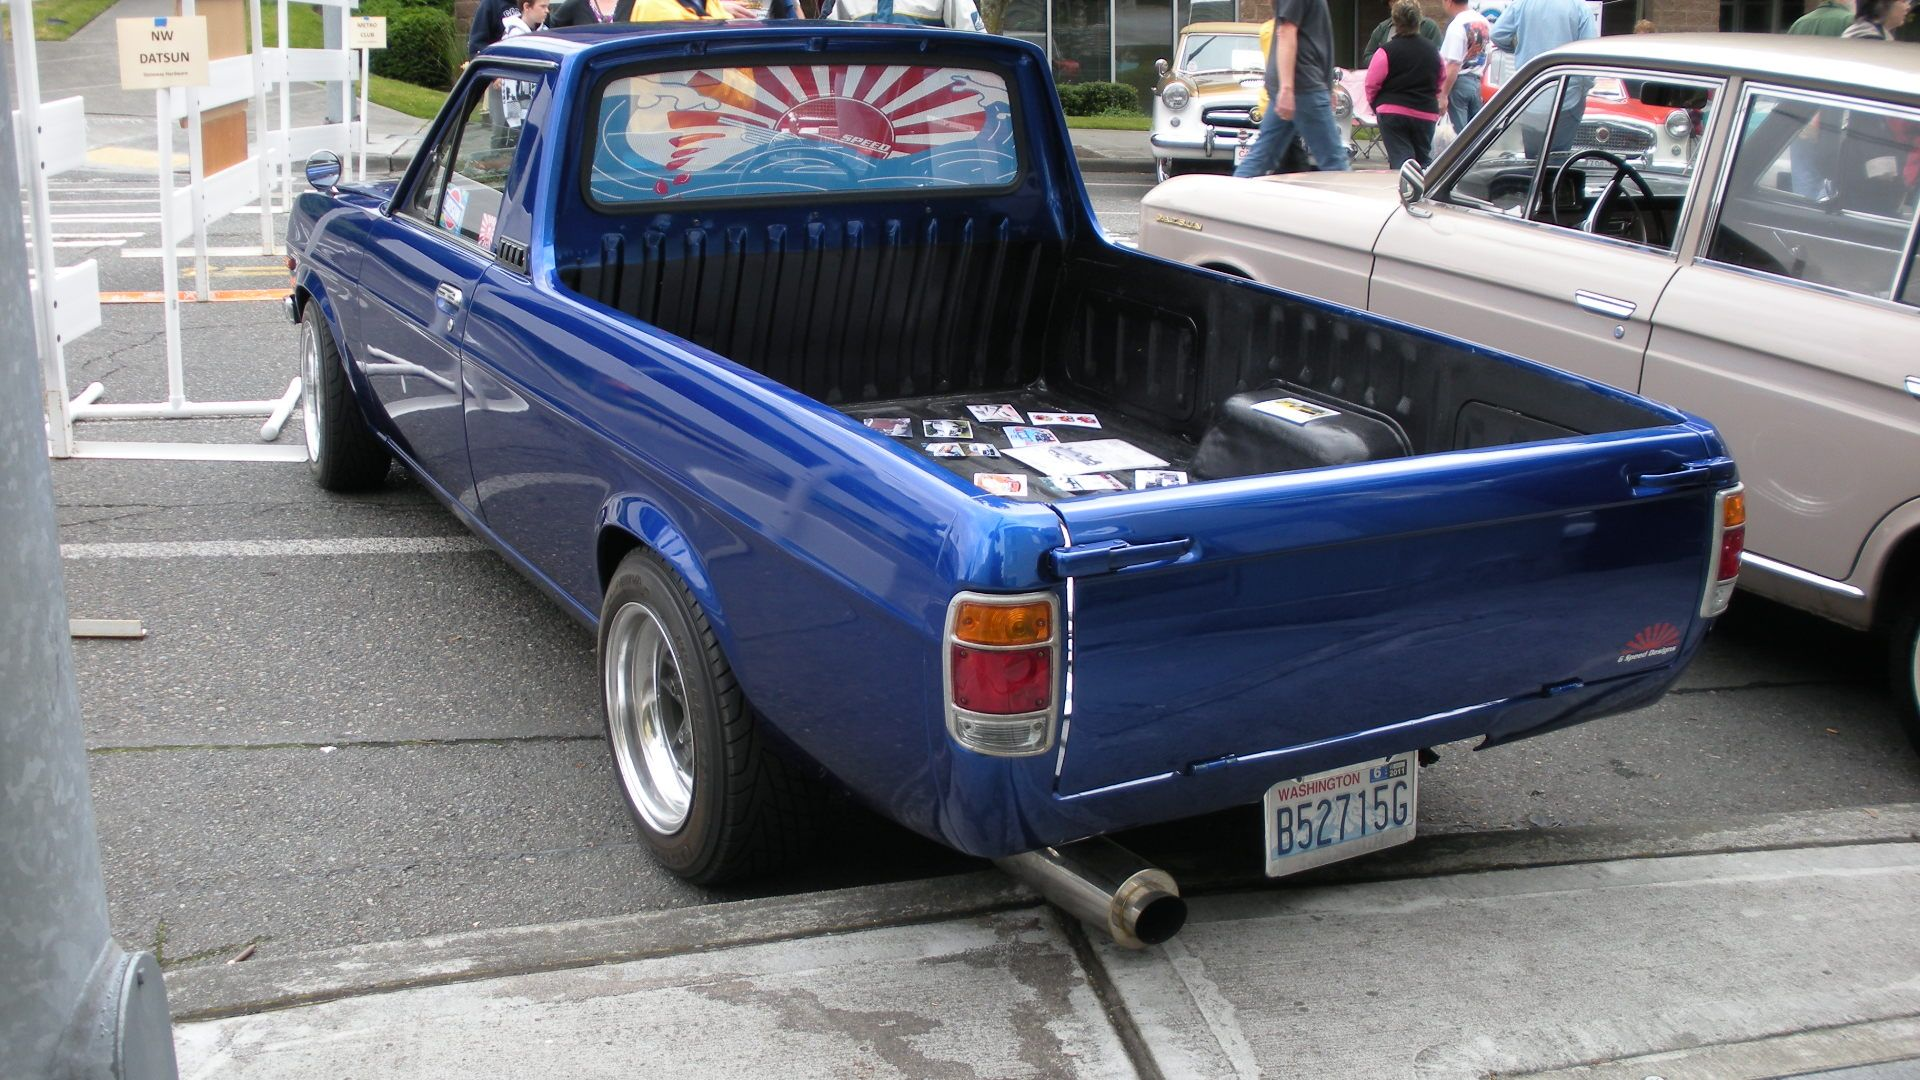 1974 Datsun Pick Up for Sale http://commons.wikimedia.org/wiki/File:1974_Datsun_1200_pickup_rear_%26_side.jpg